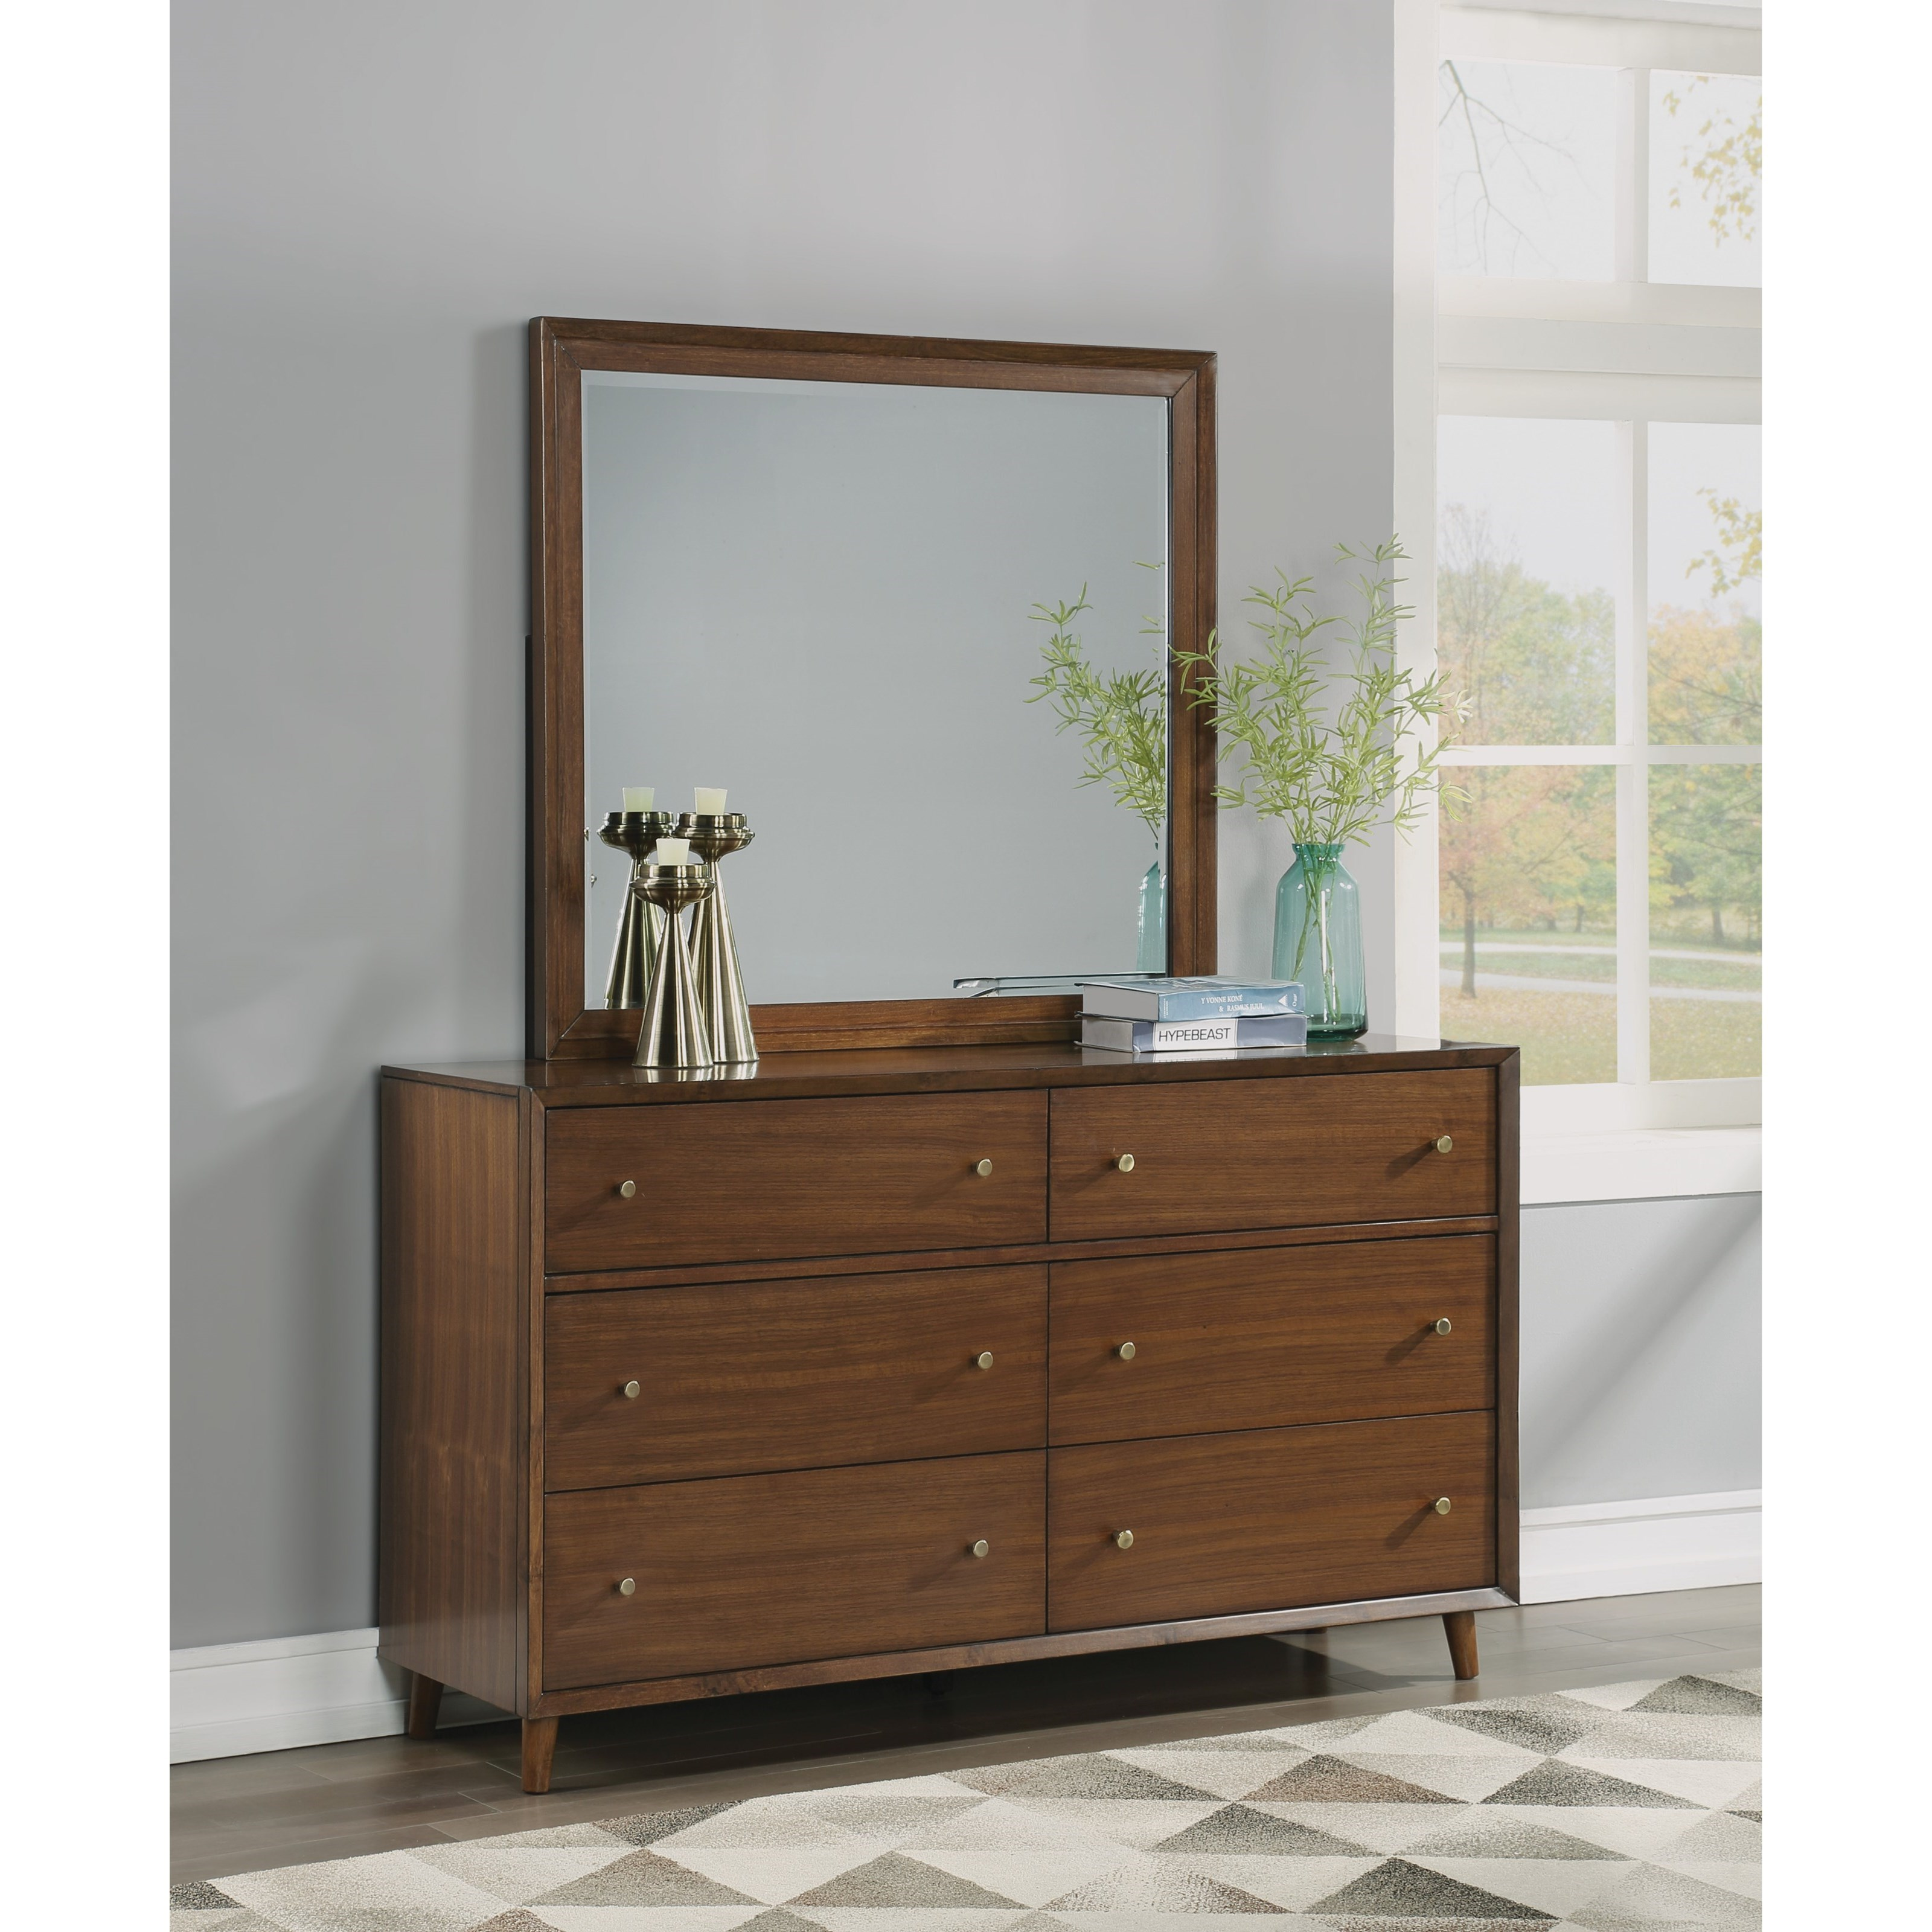 Ludwig Dresser and Mirror Set by Flexsteel Wynwood Collection at Home Collections Furniture